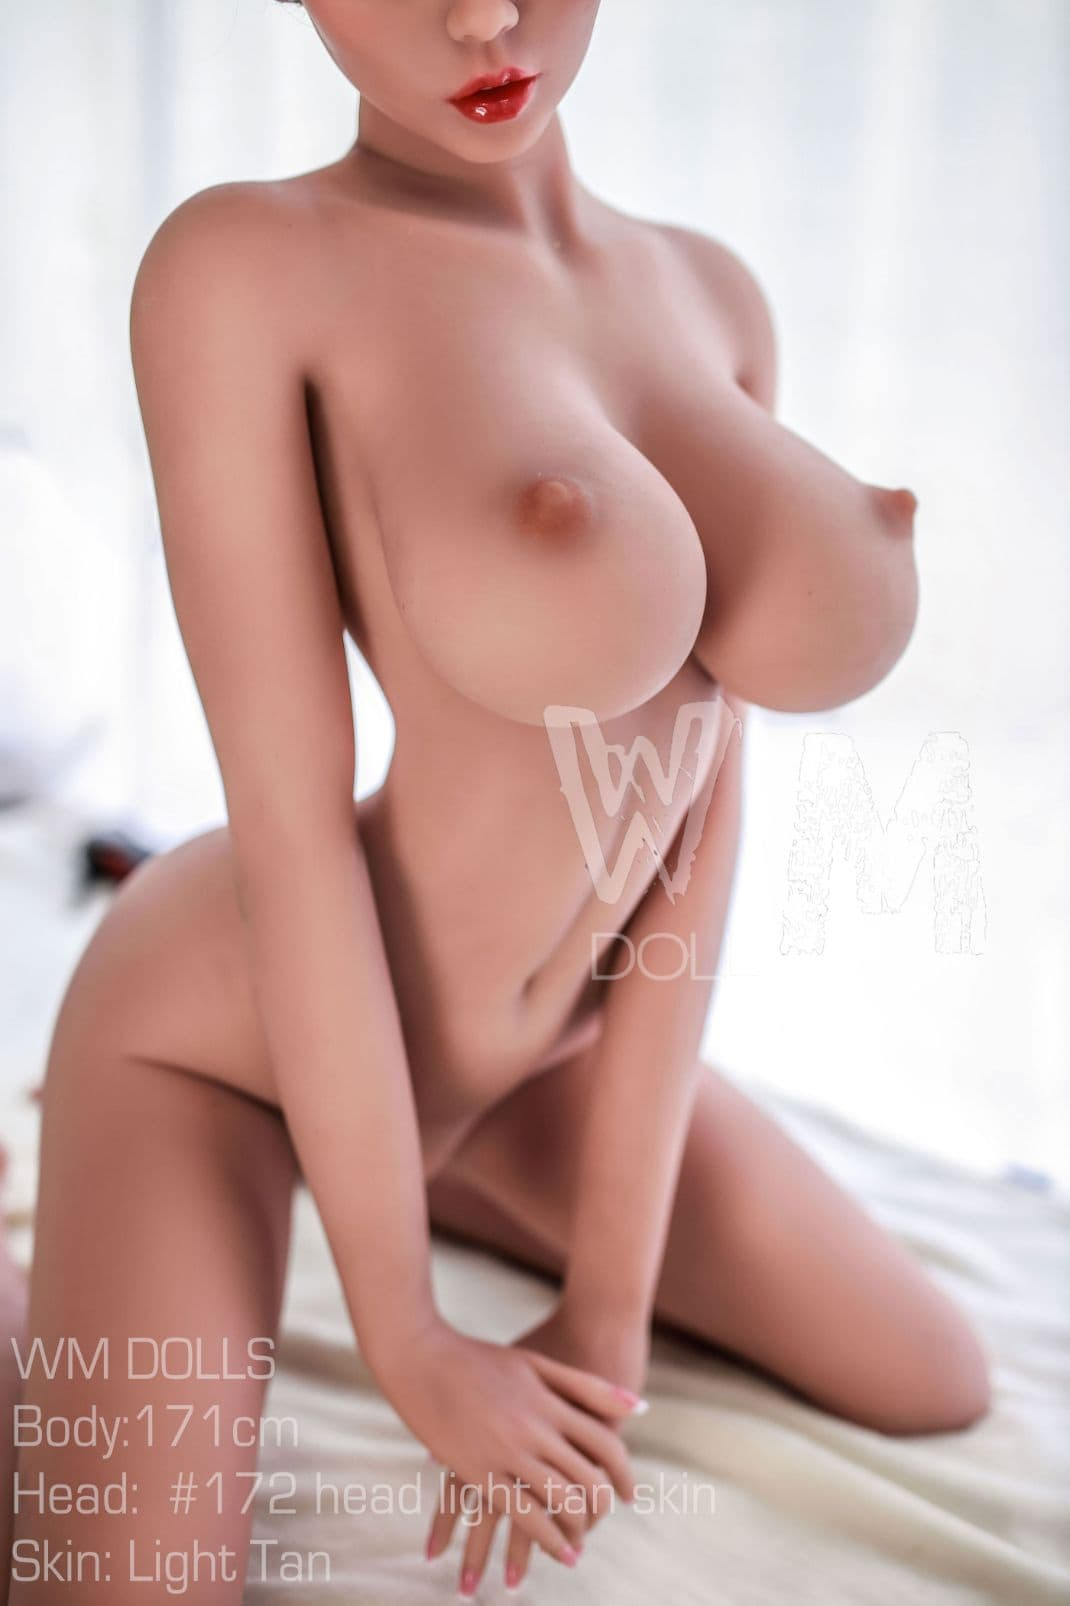 kristina 171cm 5ft6 brown hair fantasy featured big boobs tan skin tpe wm sex doll(8)